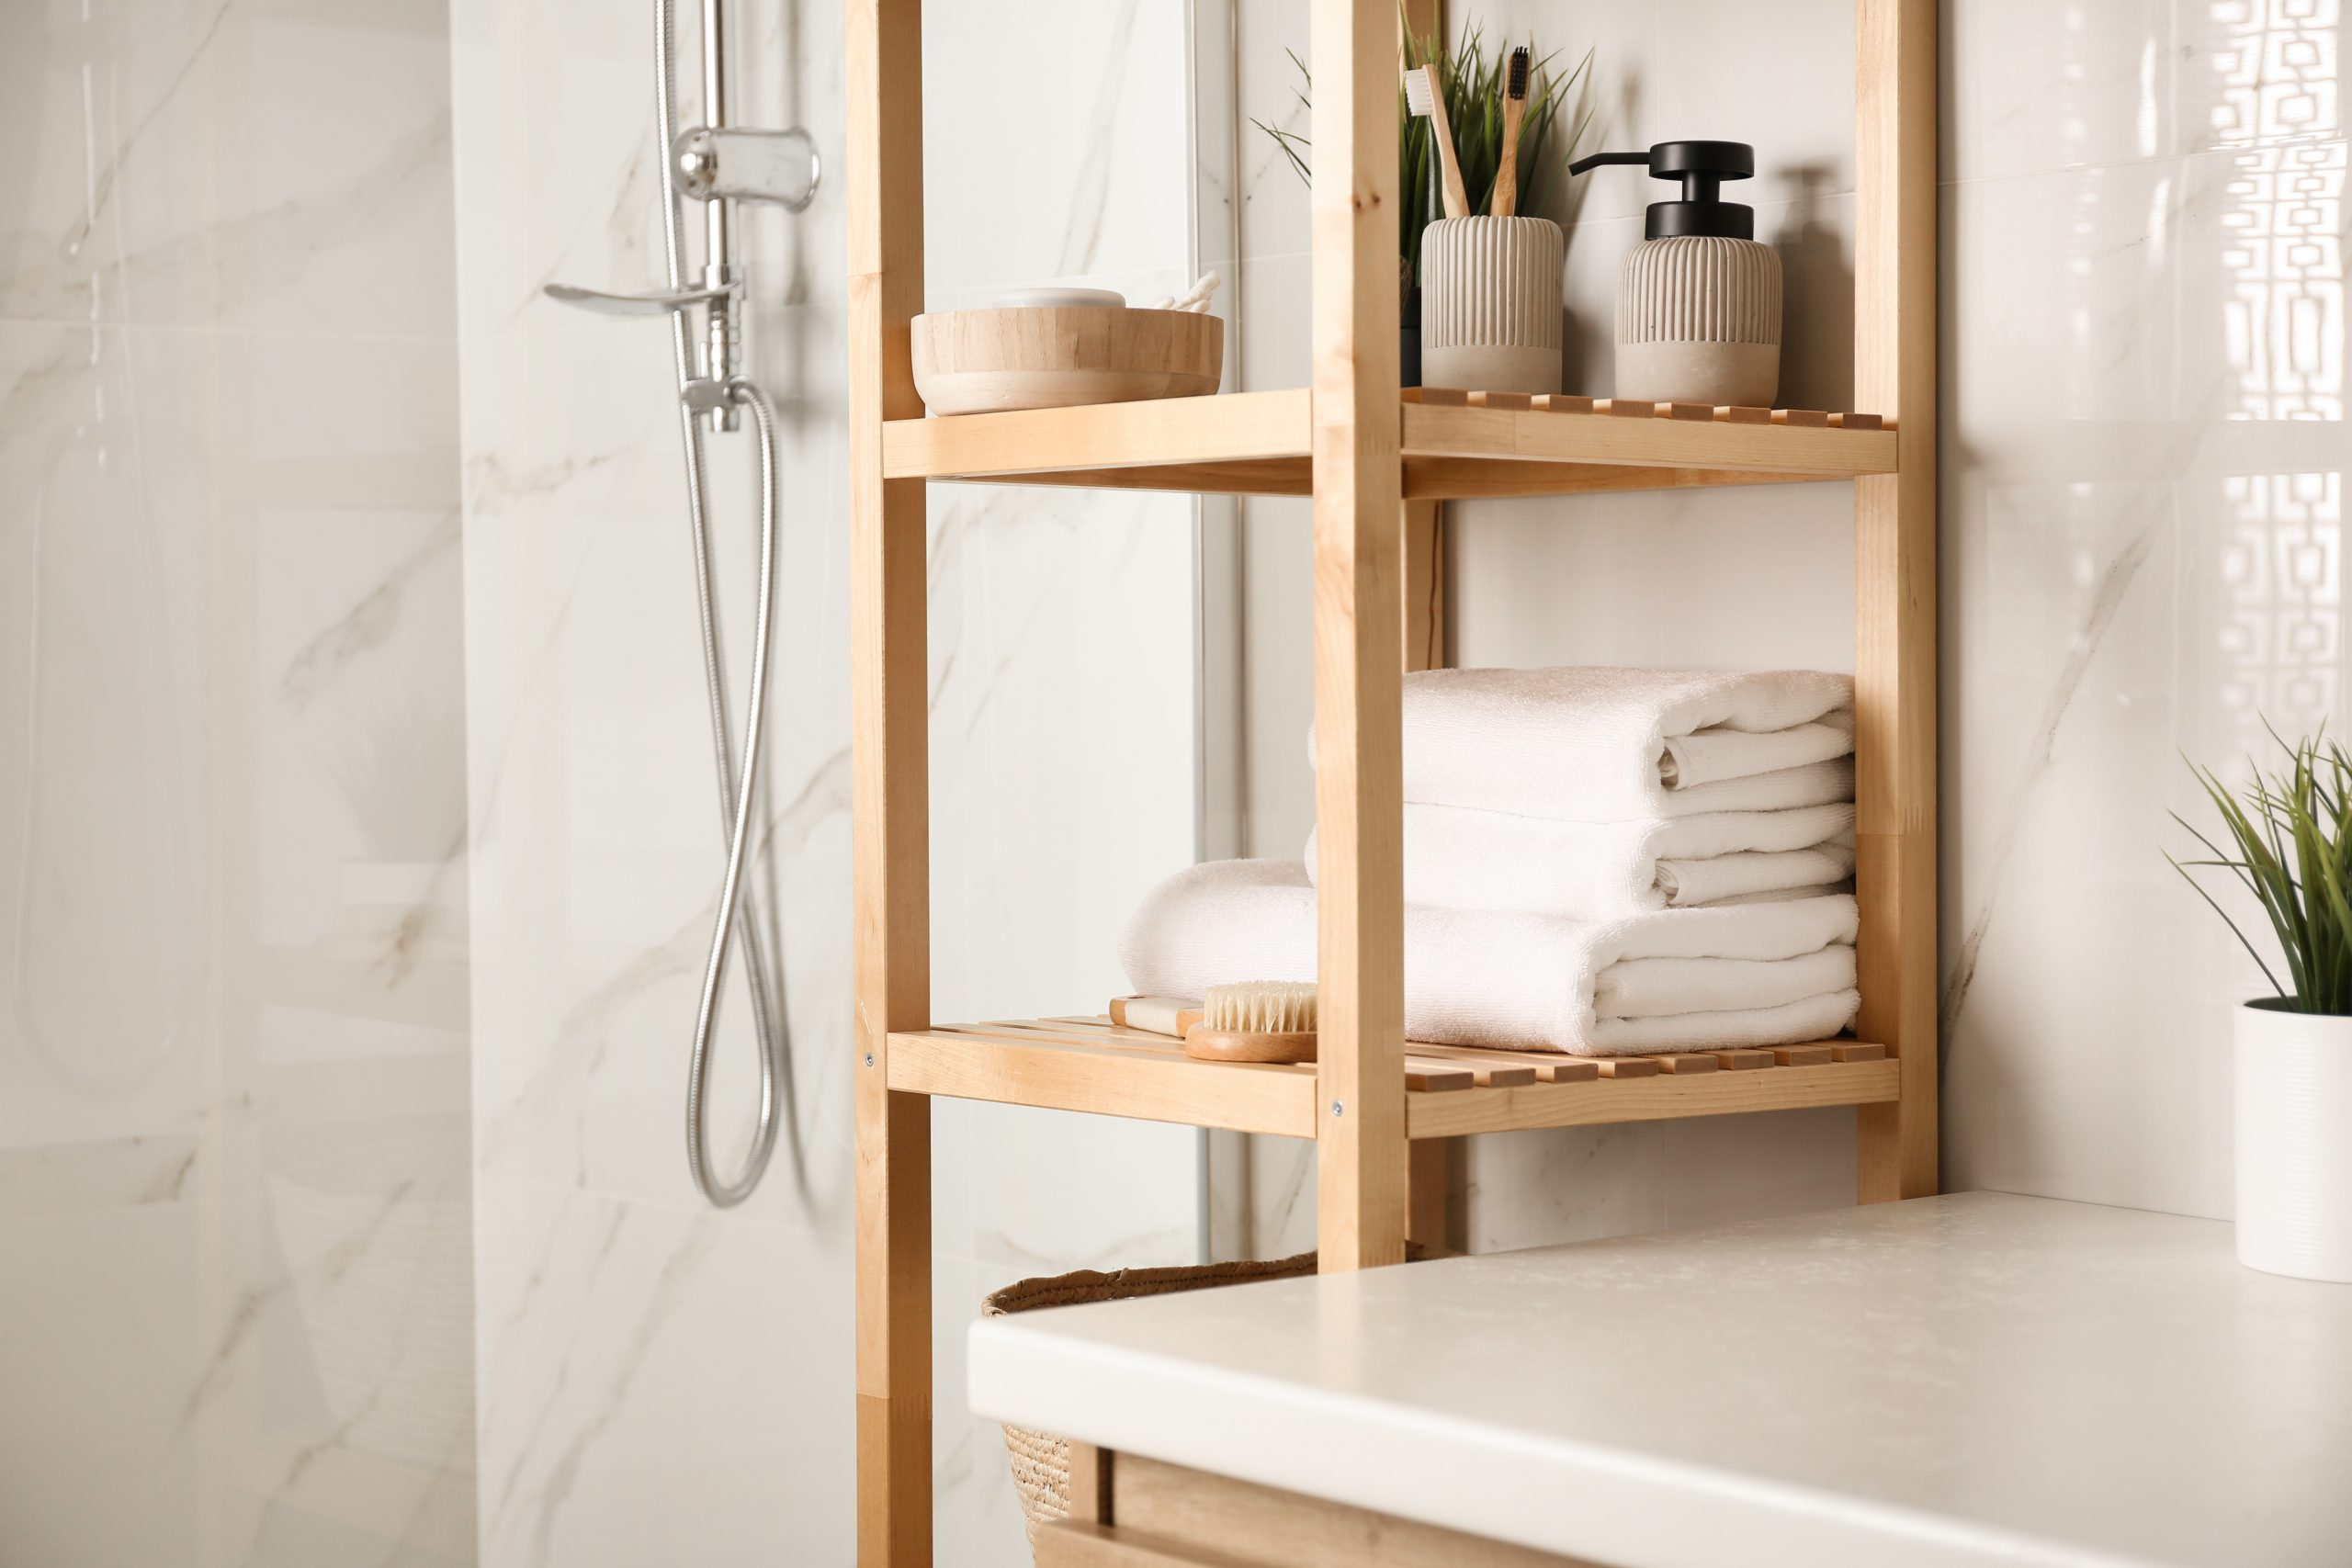 Master Bathroom Storage Cabinet Ideas